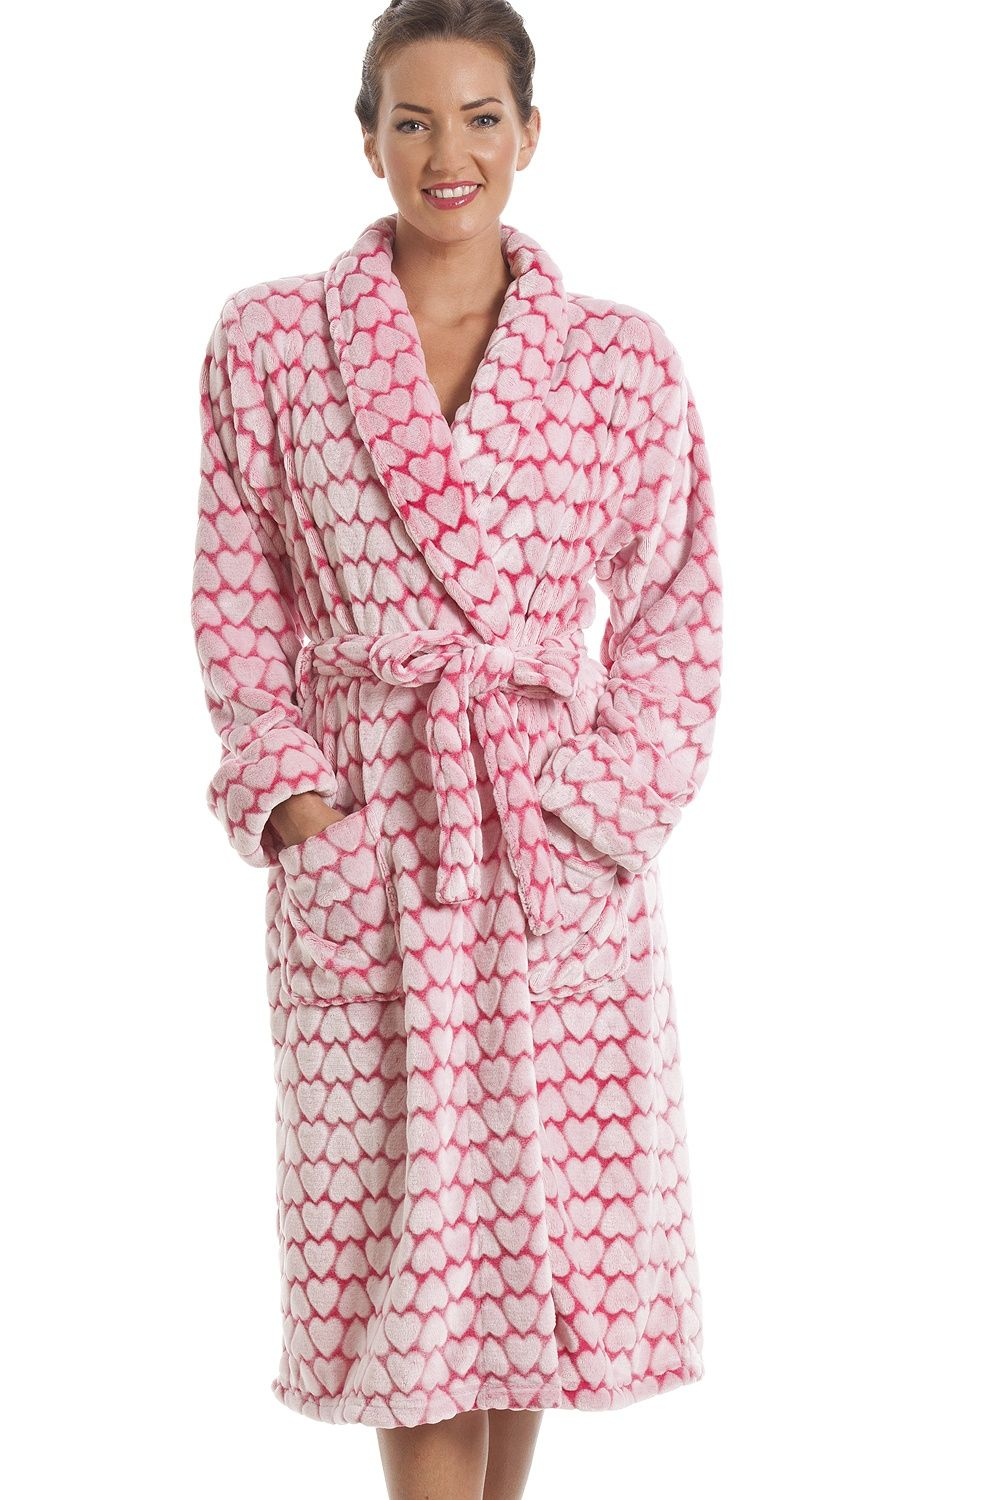 White Heart Print Supersoft Fleece Pink Bathrobe  2507134cd